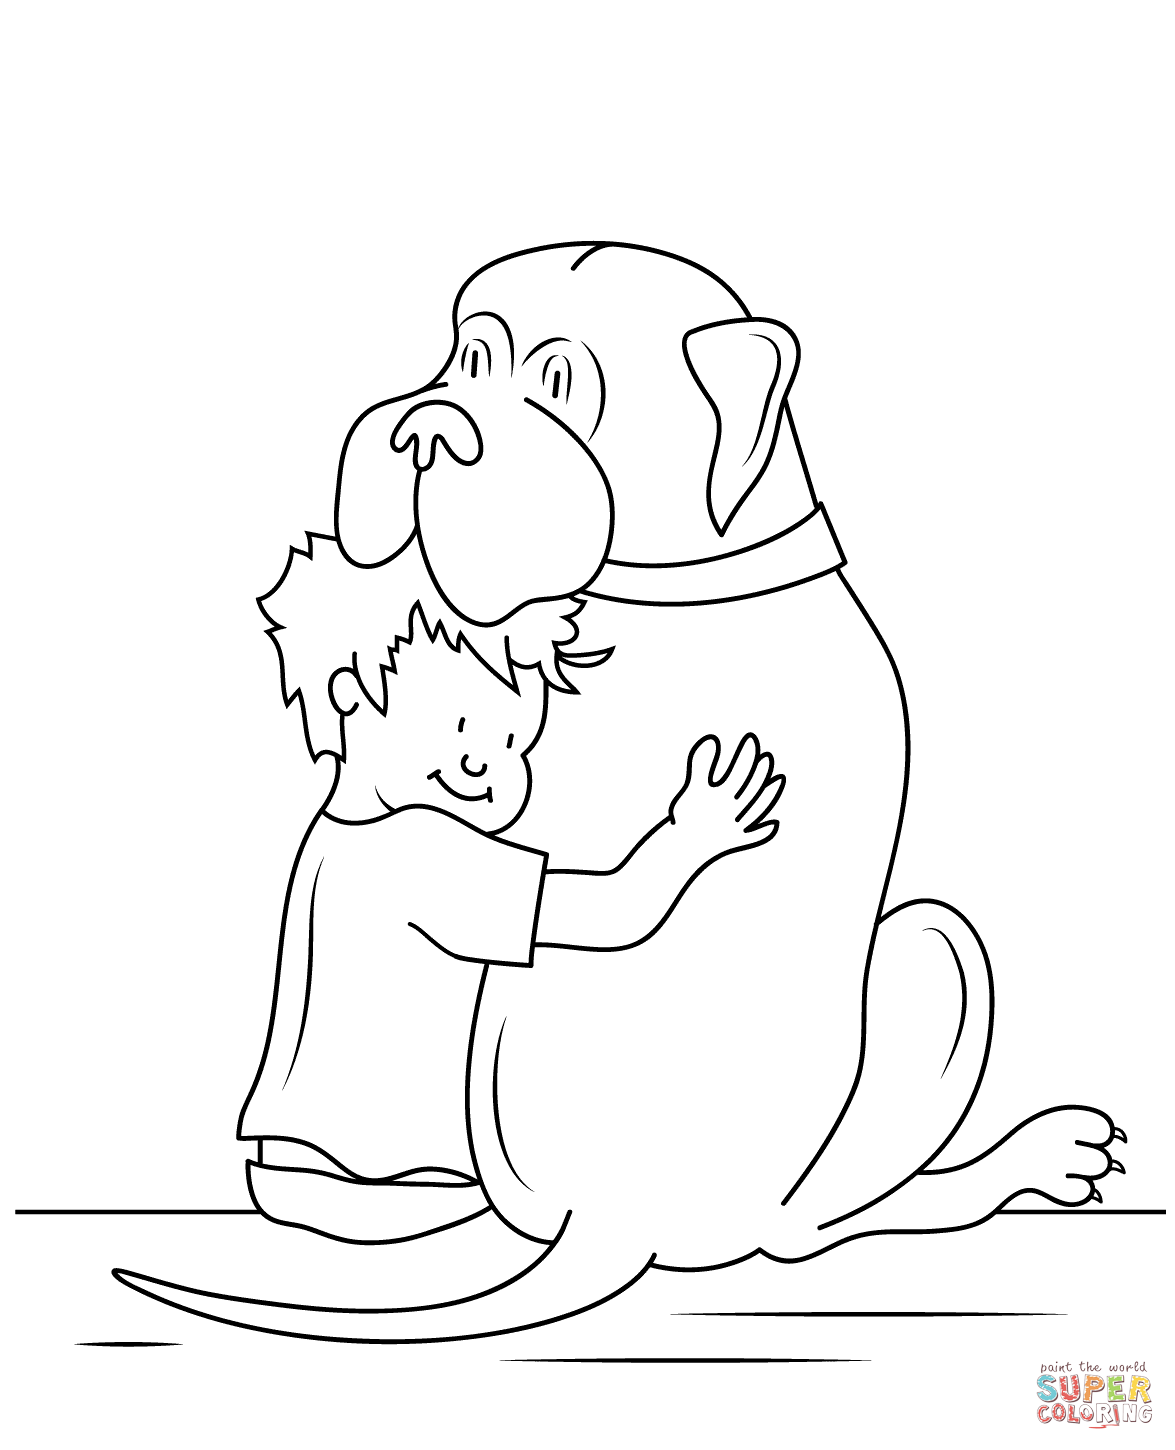 Mudge clipart jpg royalty free library Henry and Mudge coloring page   Free Printable Coloring Pages jpg royalty free library